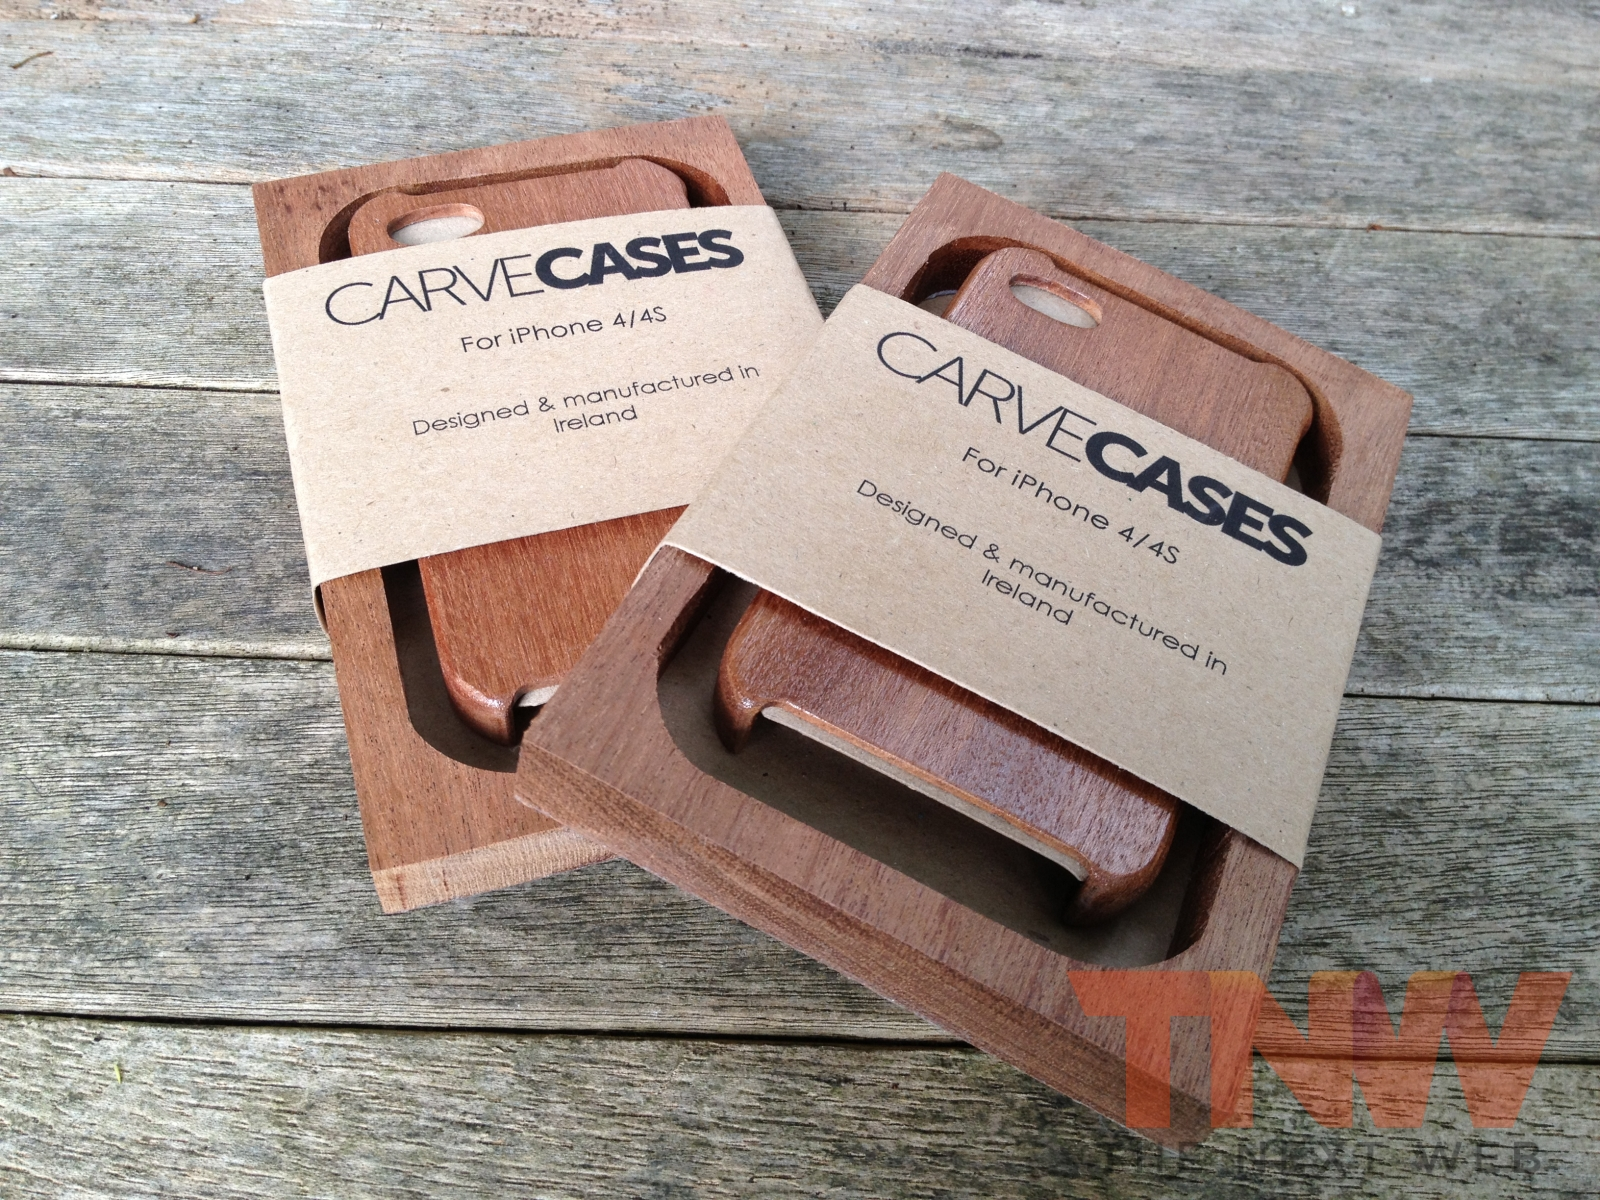 TNW Review: The Carve Case offers handmade, lightweight wooden protection for your iPhone